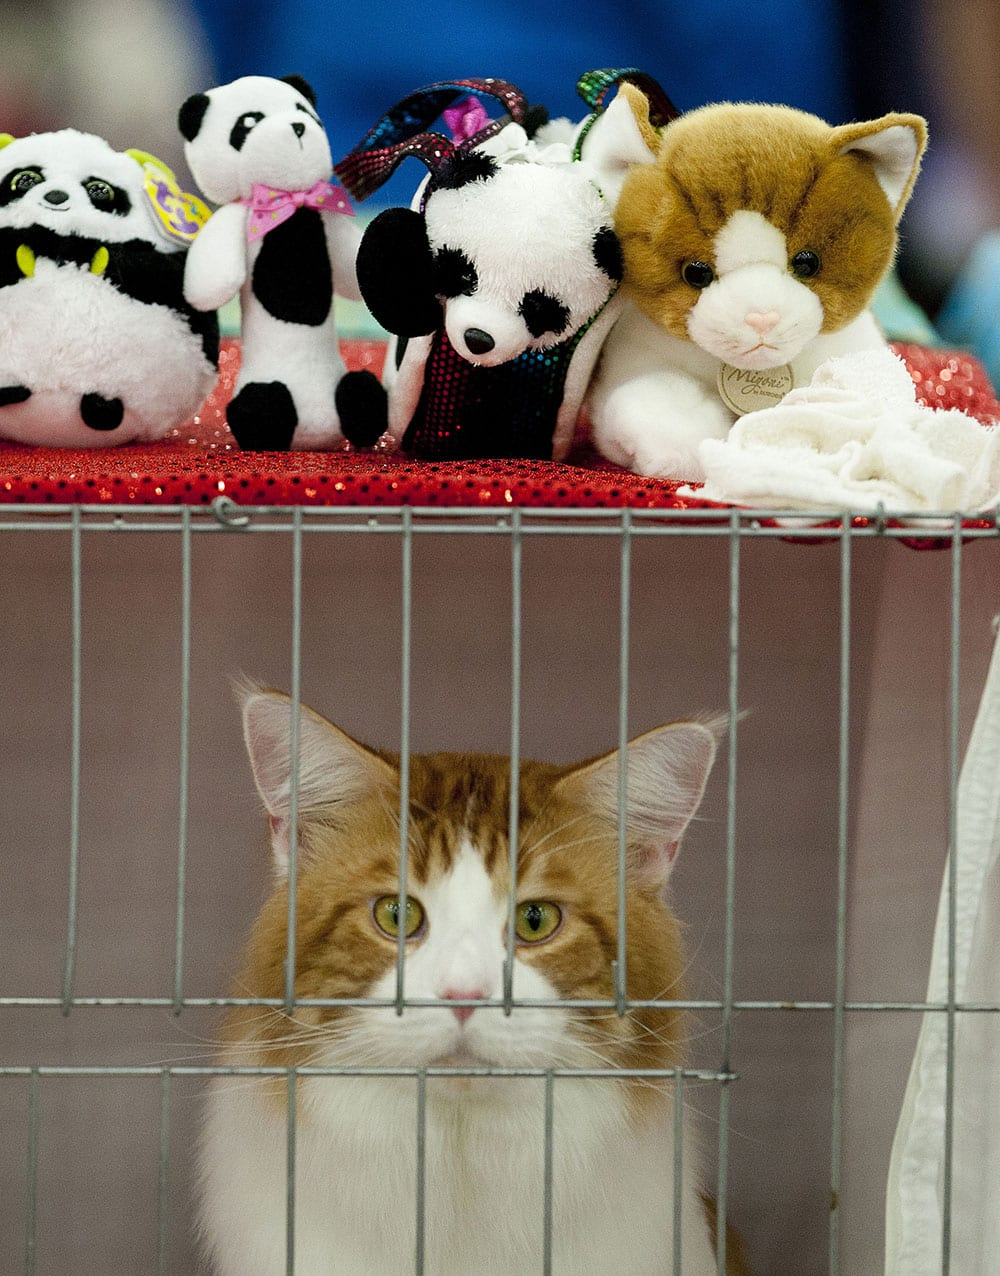 A Maine Coon cat named Phoenix waits in their cage to be shown at the Houston Cat Club`s 61st Annual Charity Cat Show at the George R. Brown Convention Center in Houston.